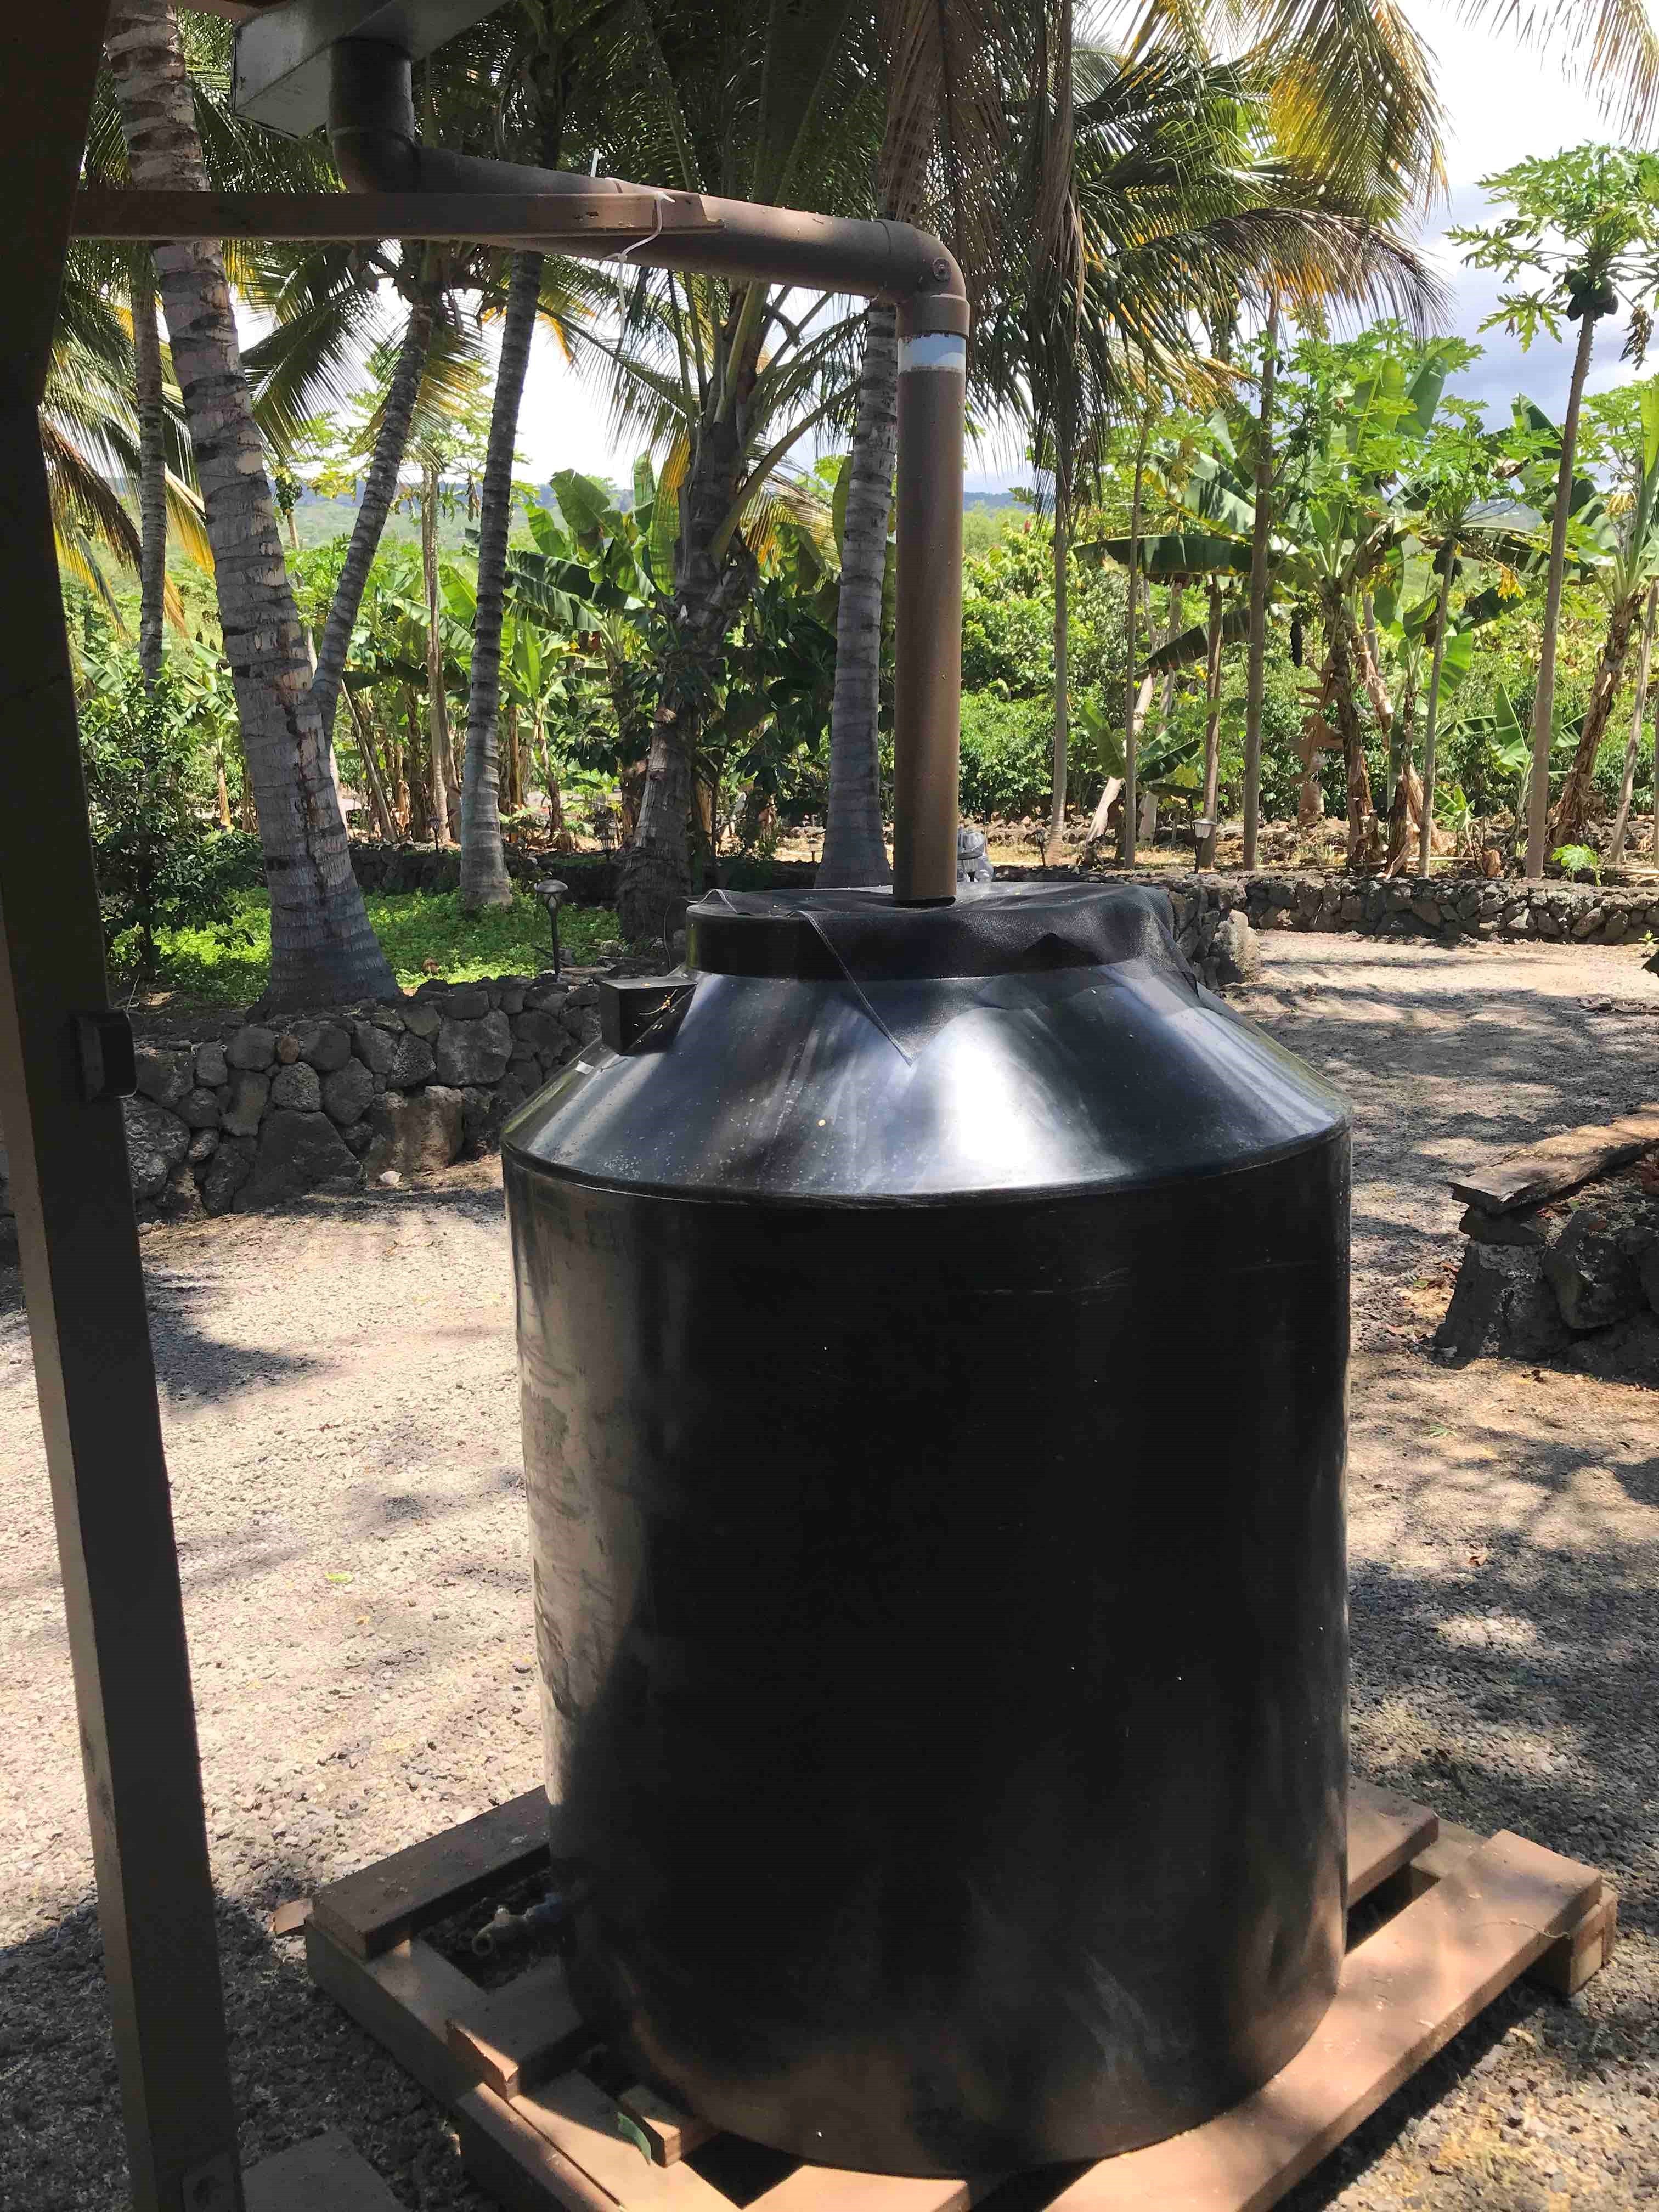 LightManufacturing water tank on resort grounds